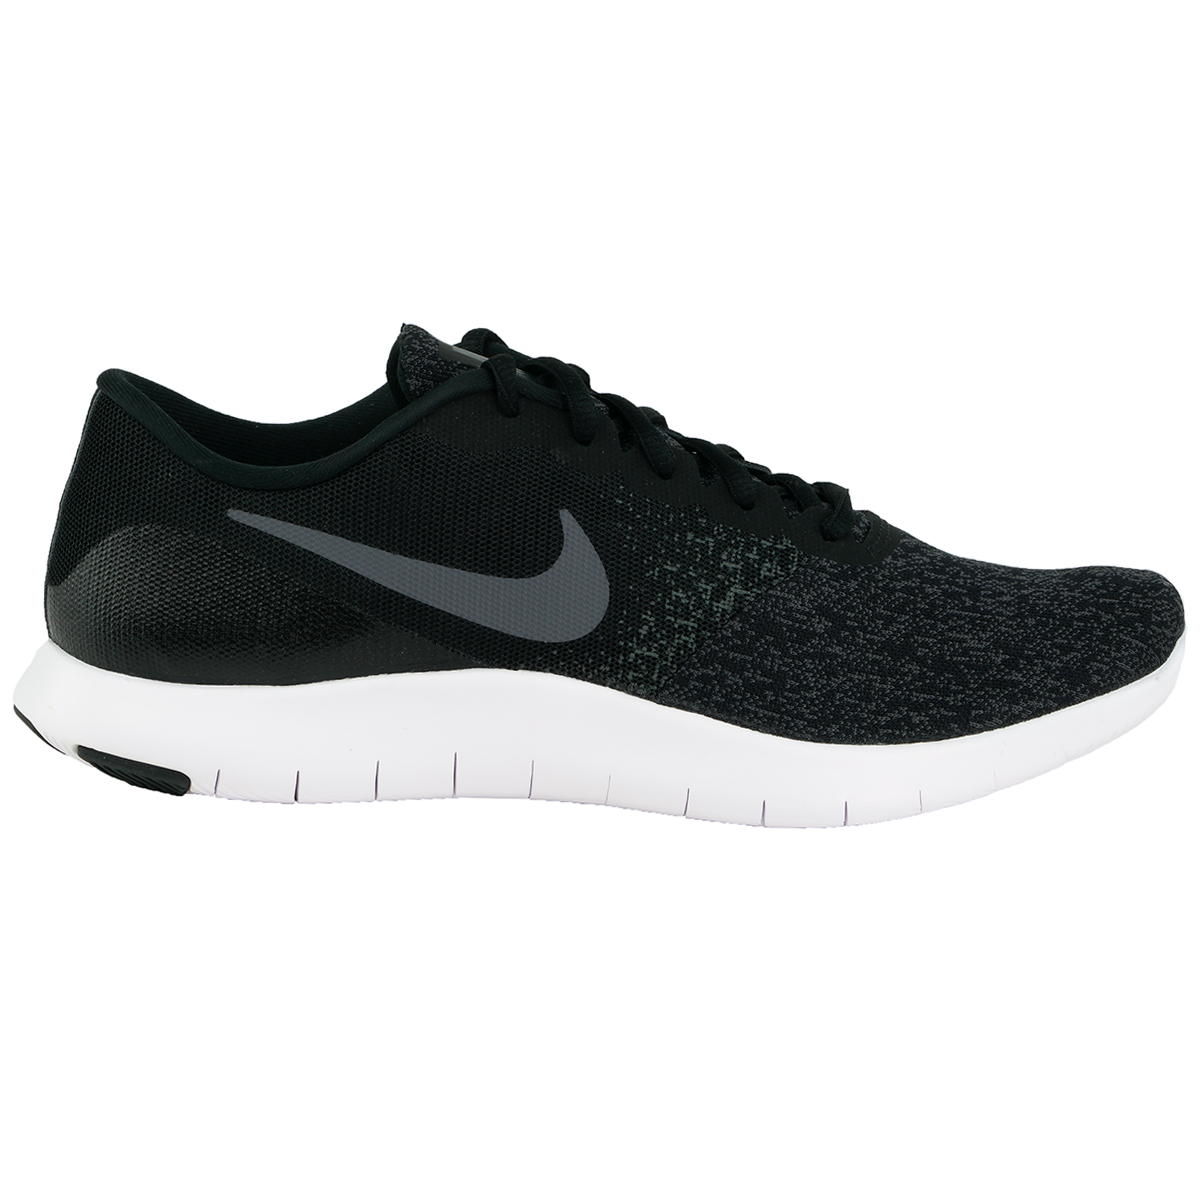 Details about Nike Men s Flex Contact Running Shoes ee9b311061d10